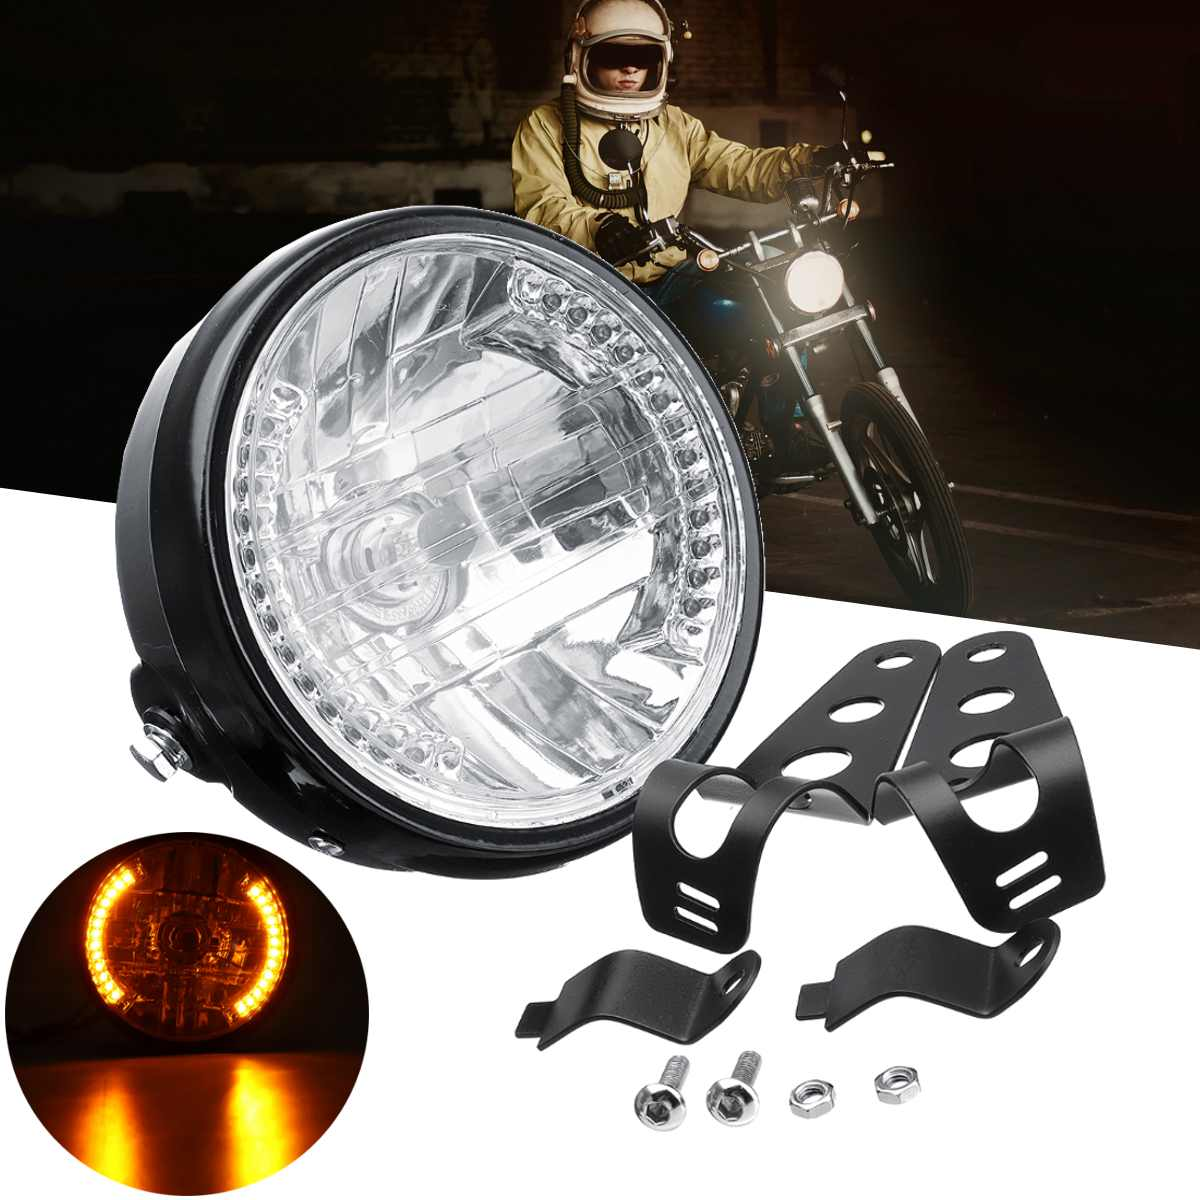 7 inch <font><b>H4</b></font> 35W Halogen <font><b>Bulb</b></font> <font><b>Motorcycle</b></font> ATV Headlight with Turn Light with Mounting Bracket image